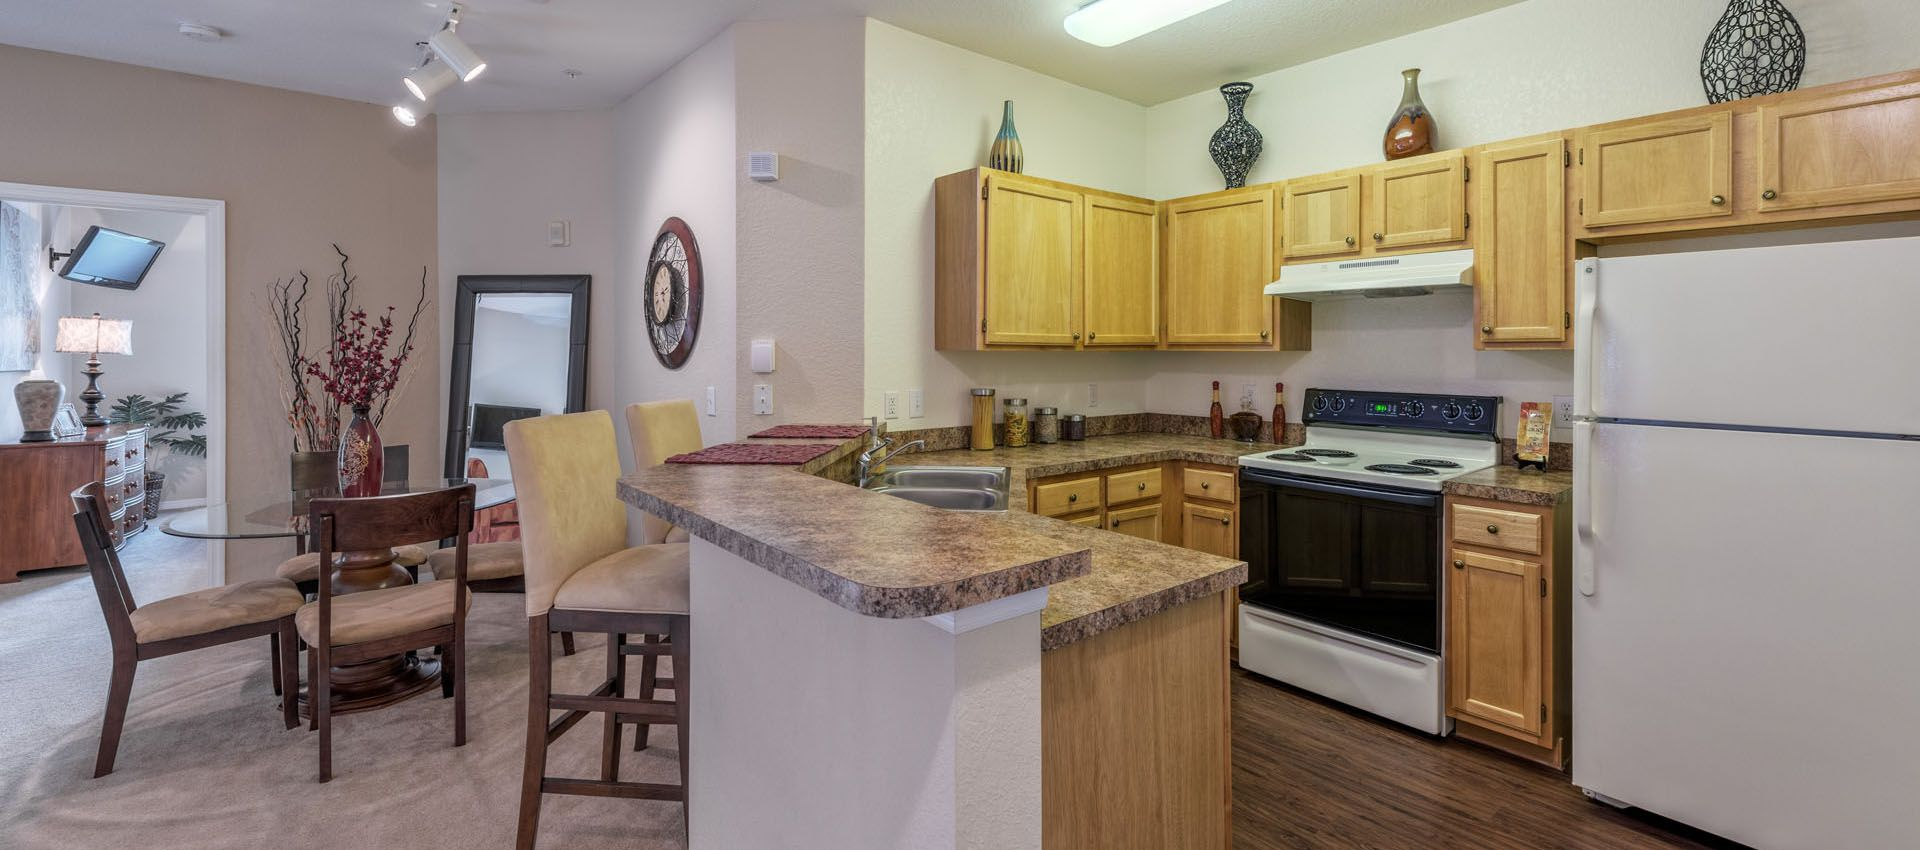 Courtney Chase Apartments Apartments For Rent In Orlando Fl House Organisation Apartments For Rent Apartment